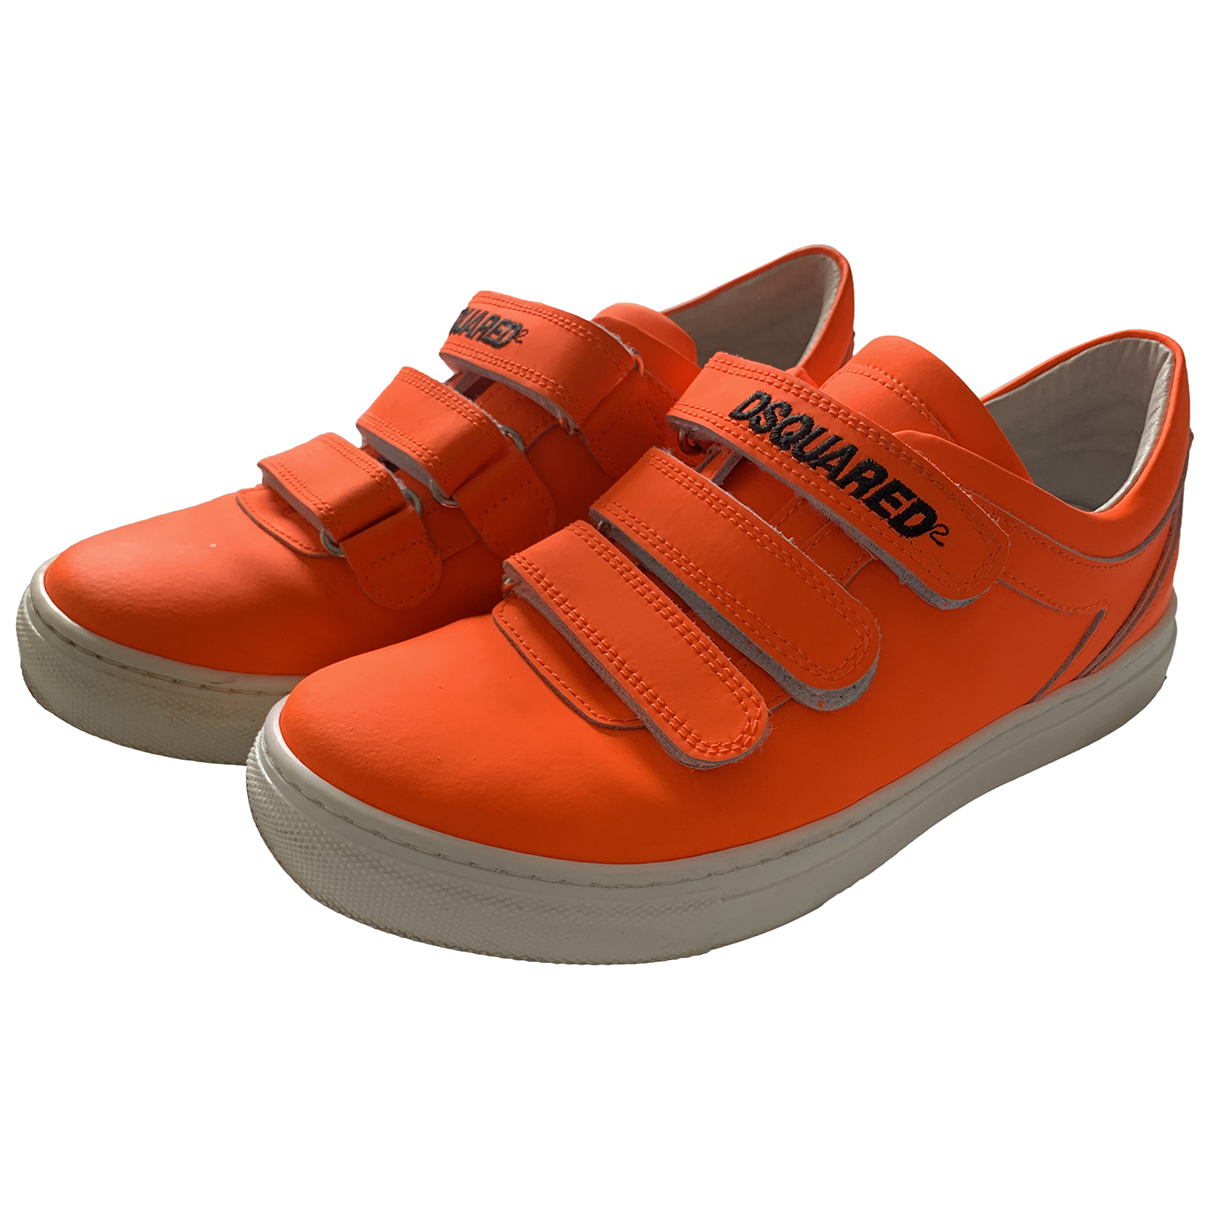 Dsquared2 N Orange Leather Trainers for Women 36 EU